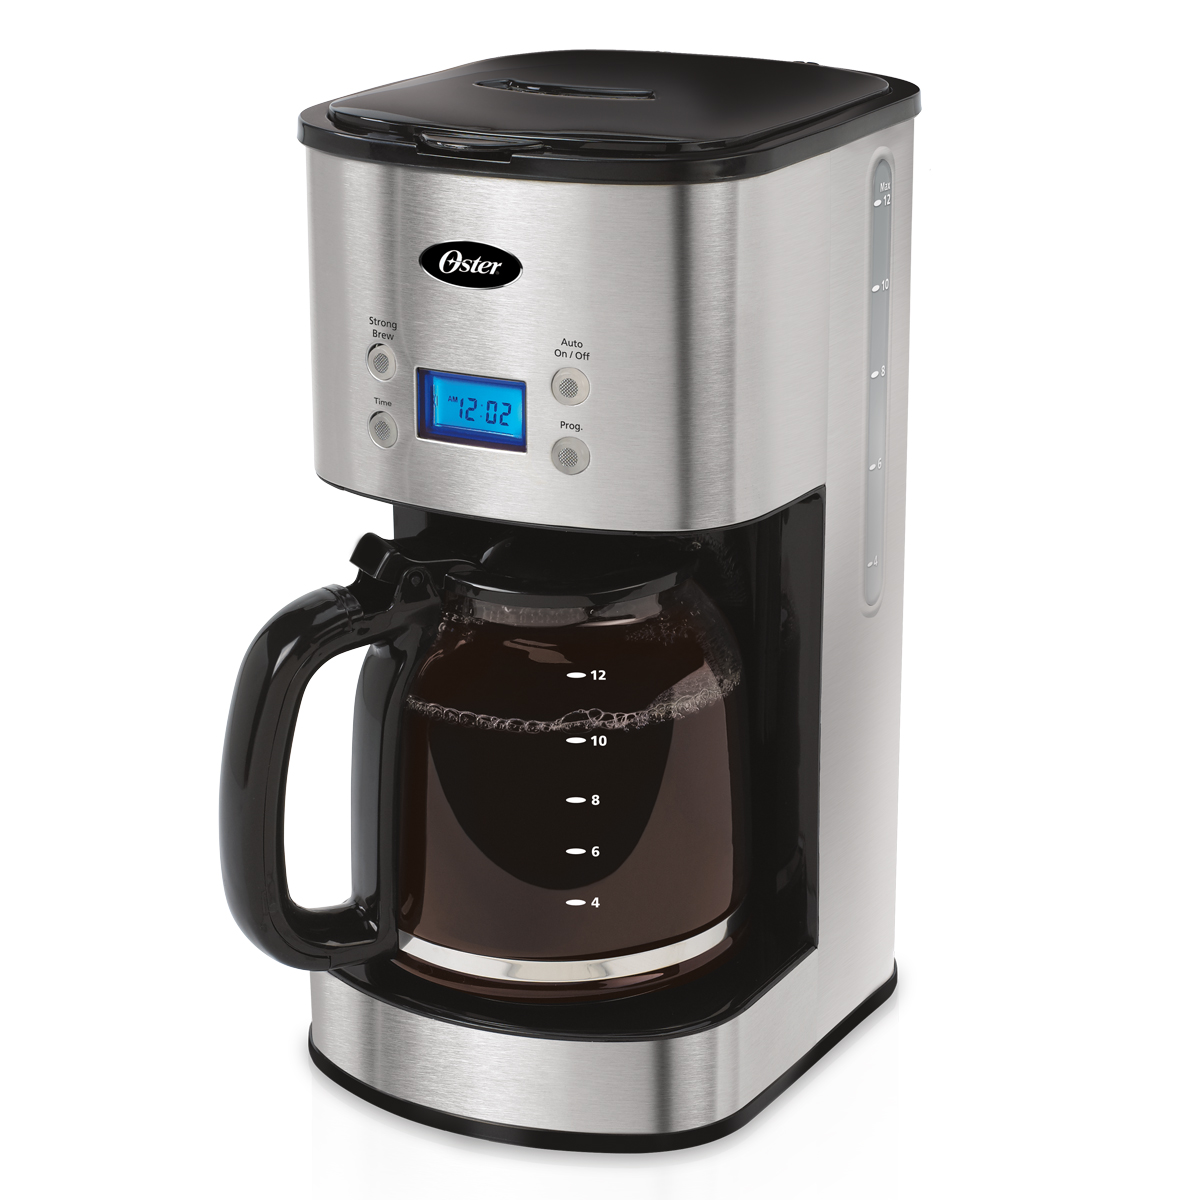 Oster 12 Cup Programmable Coffee Maker BVST-JBXSS41 eBay